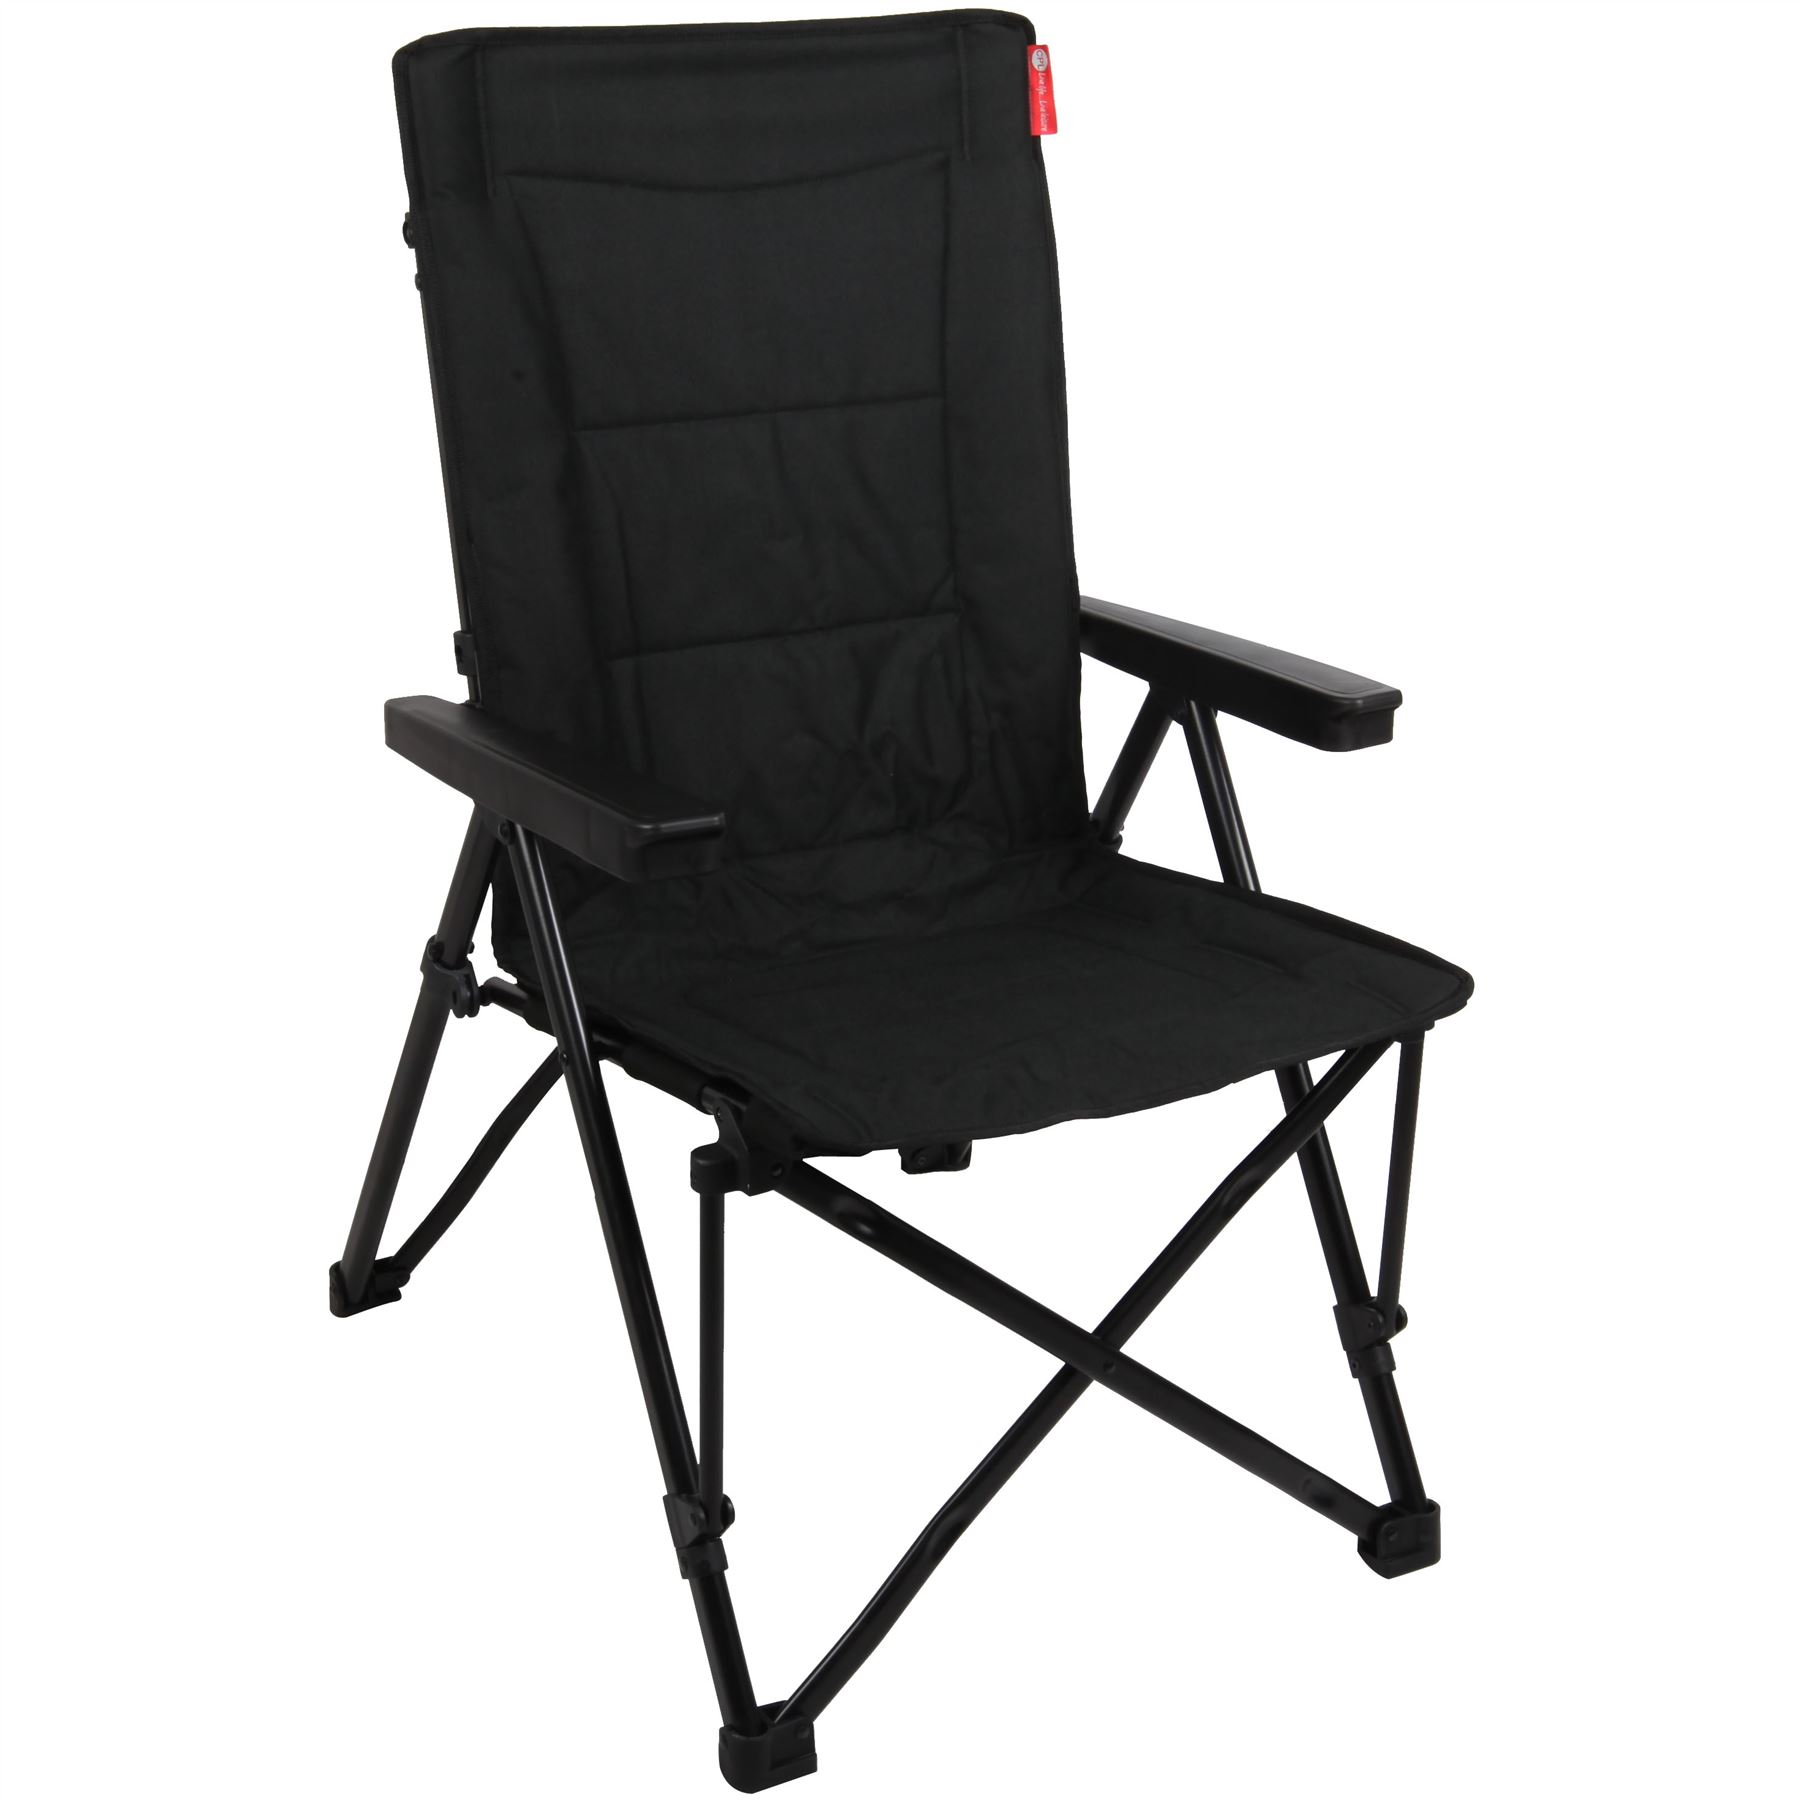 Crusader GlobeTrotter Folding Reclining Chair Camping Caravan